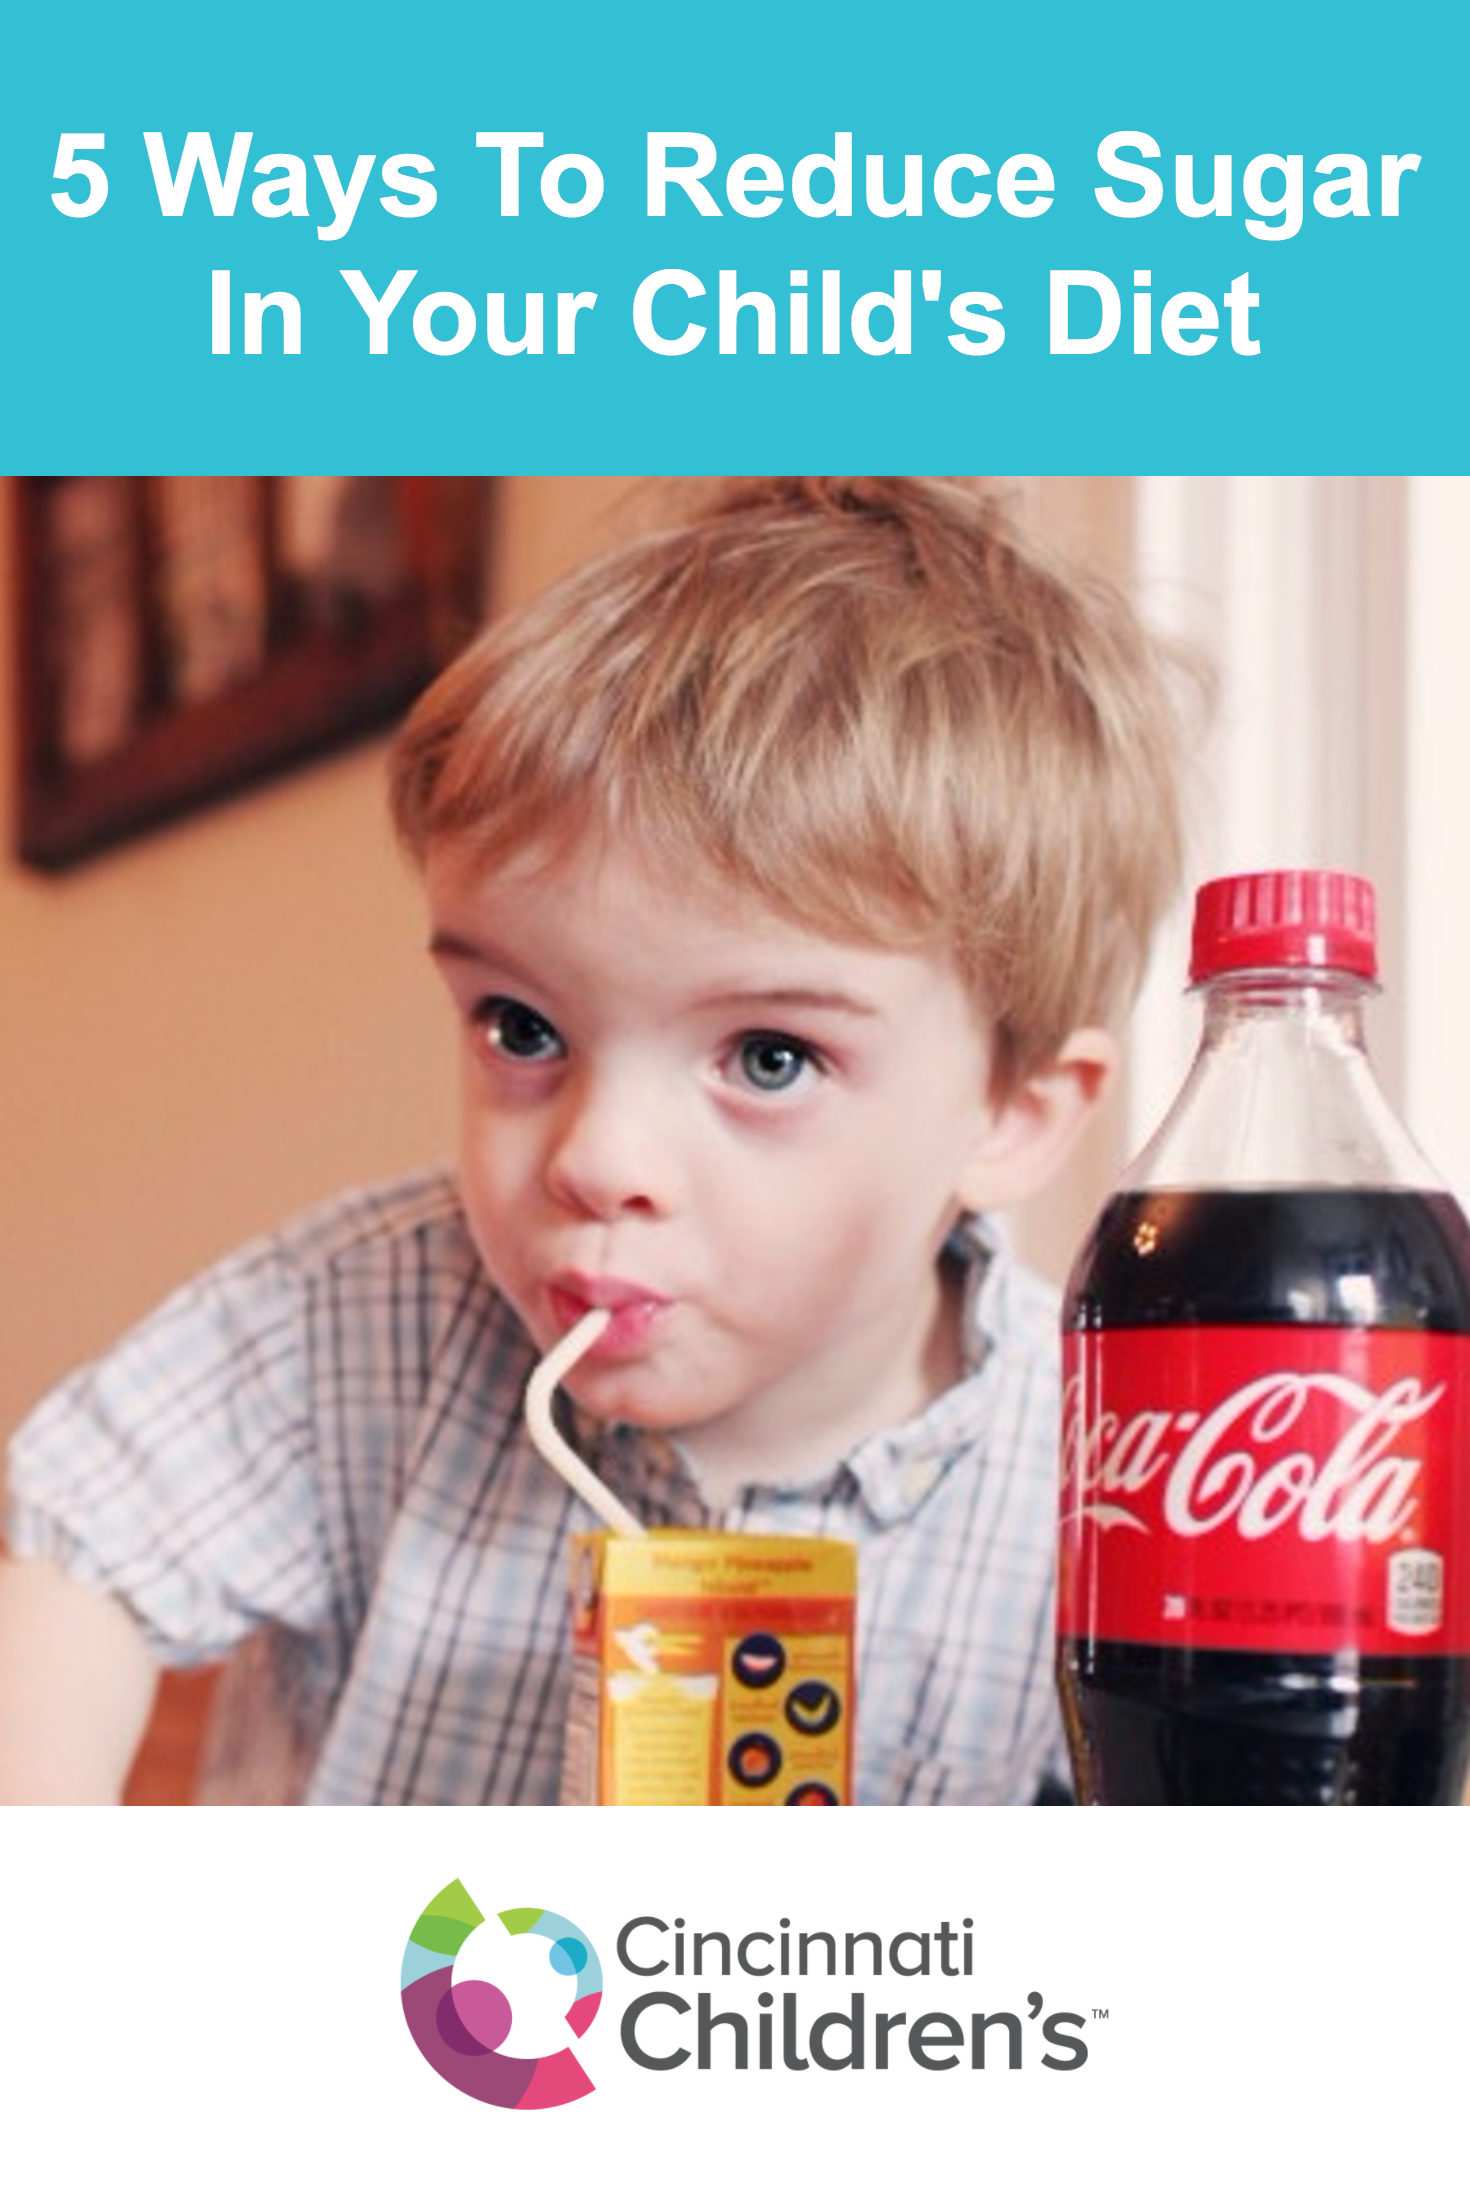 5 Easy Ways To Reduce Sugar In Your Child S Diet Cincinnati Children S Blog Diet Kids Diet Diet Cola